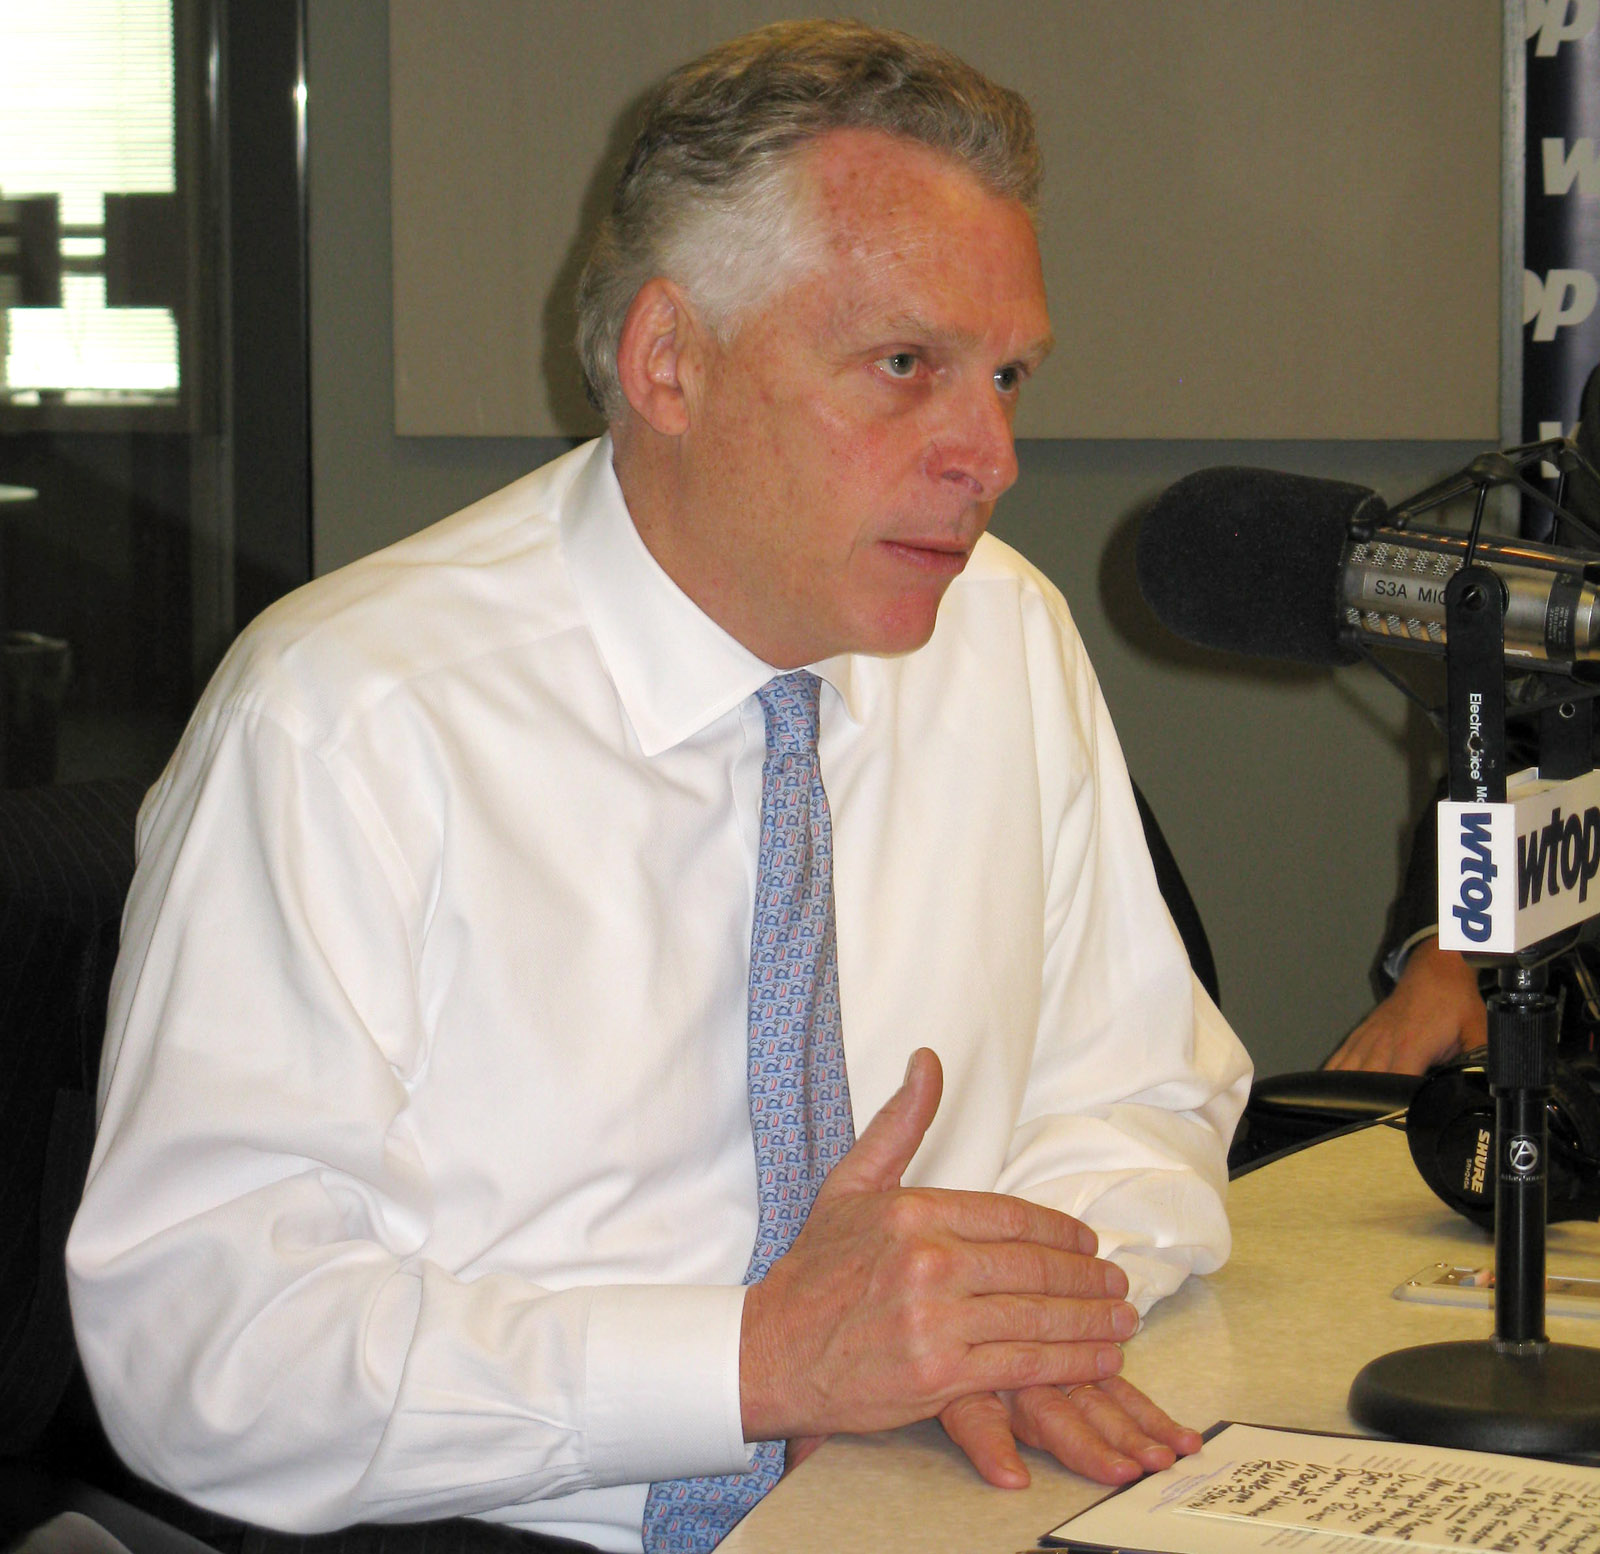 Va. Gov. McAuliffe hits back at planned suit over felon voting rights